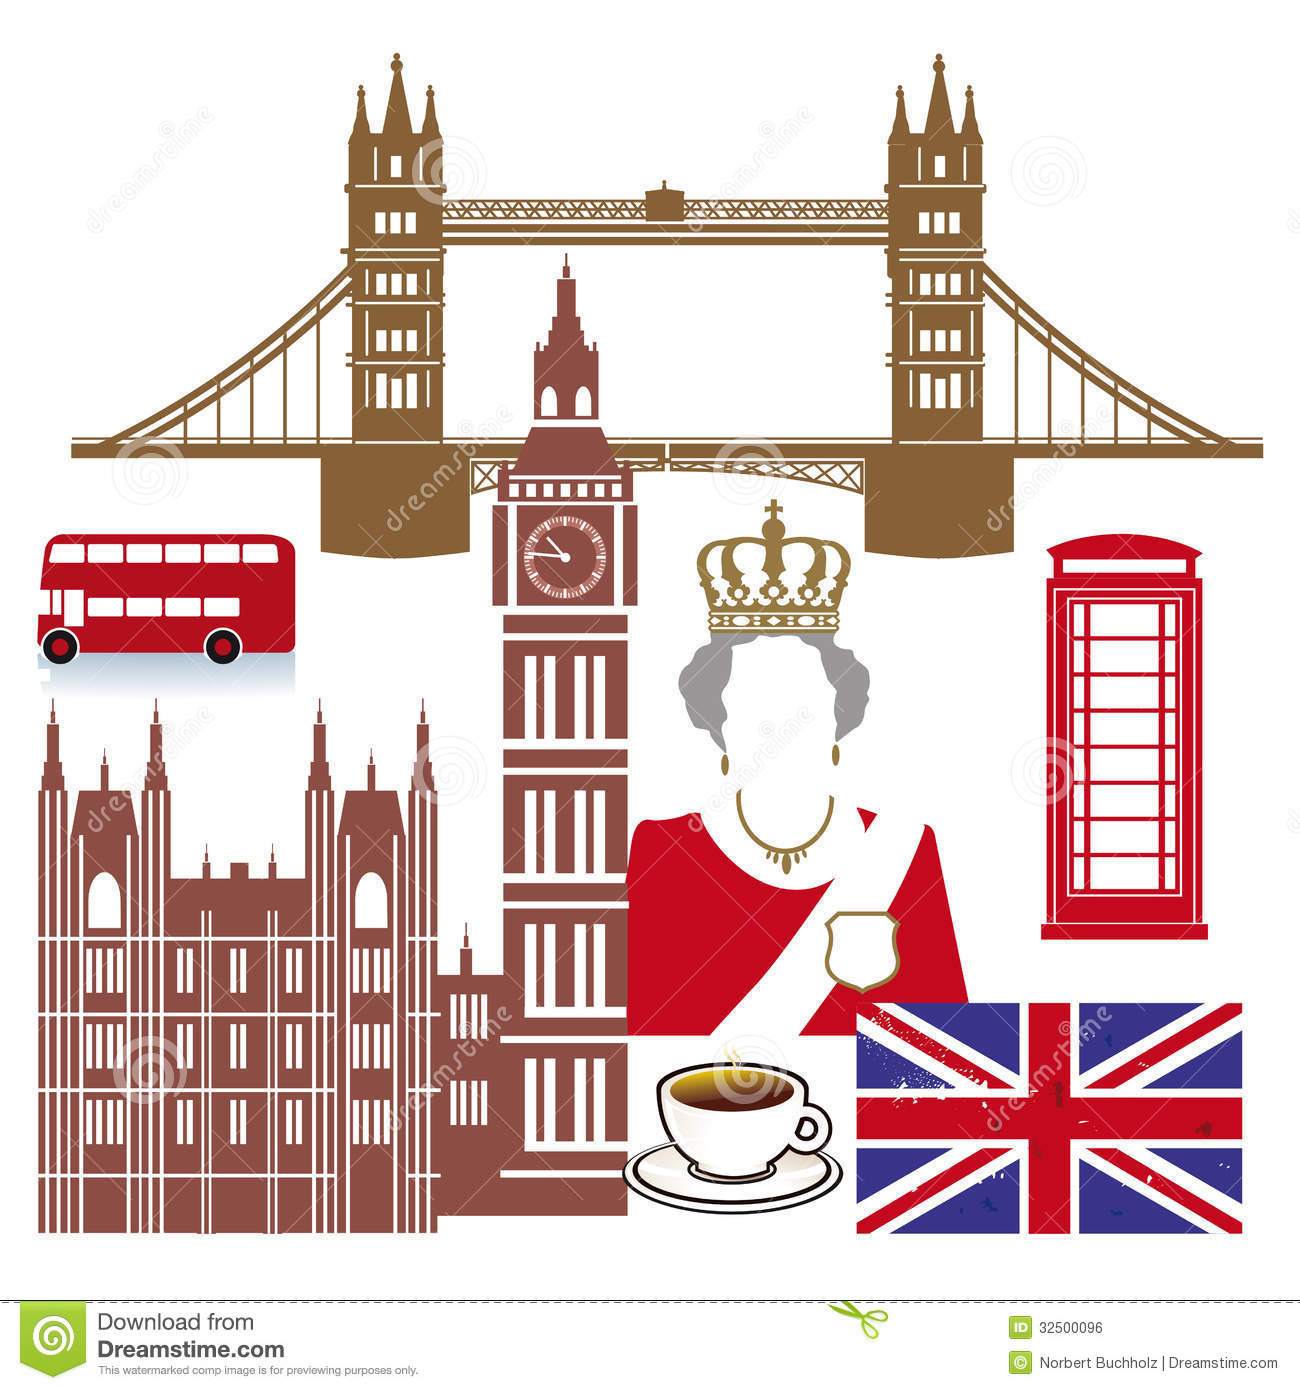 ... Queen, double decker bus, Big Ben, red phone booth and British flag